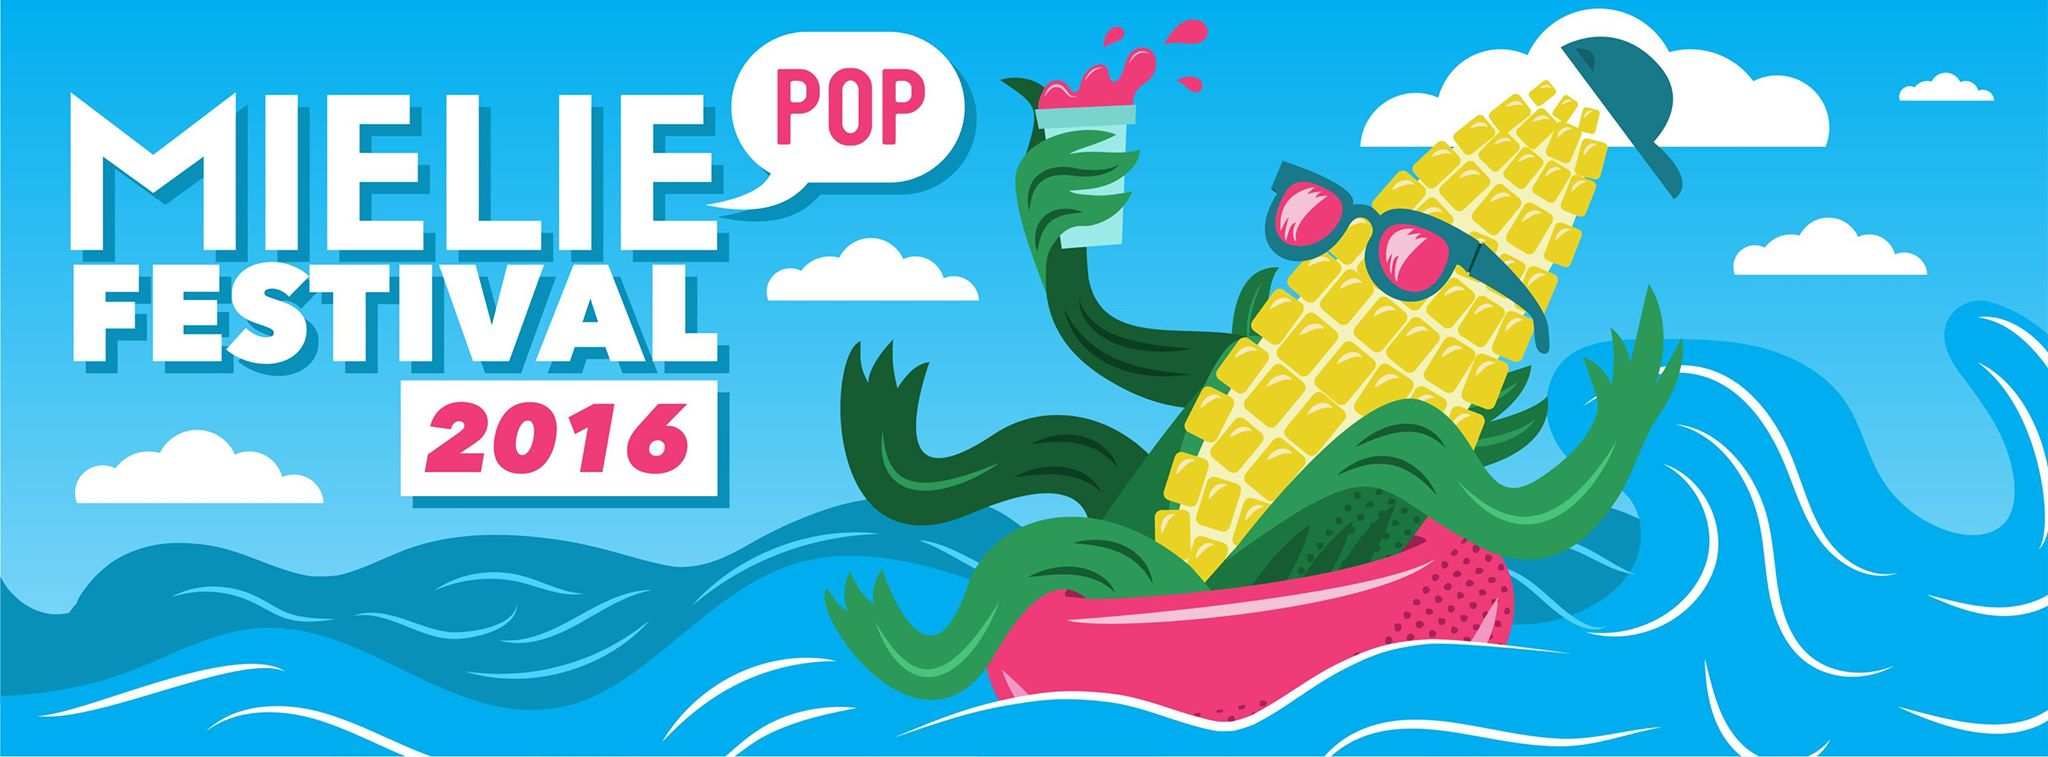 Mieliepop 2016 – what every festival should be